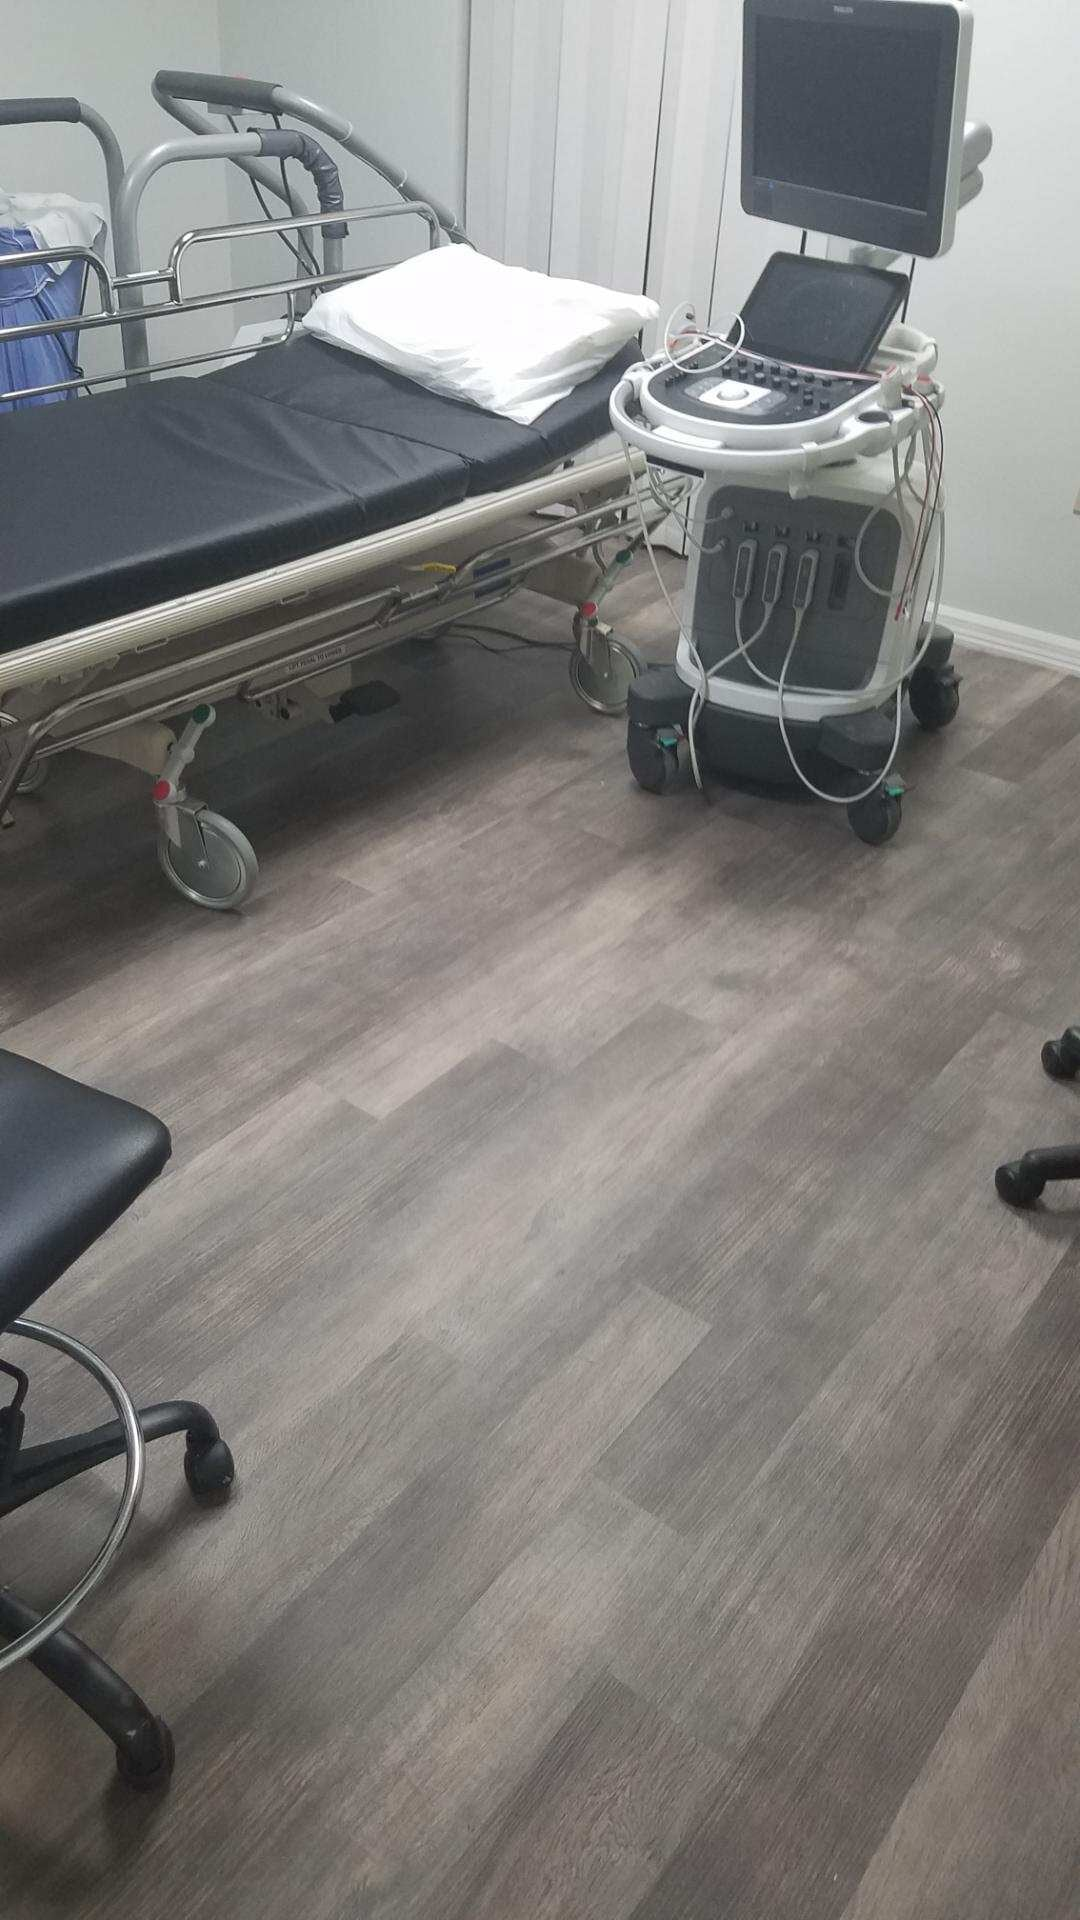 Hospital flooring installation in [[cms:city1] from Paradise Floors and More